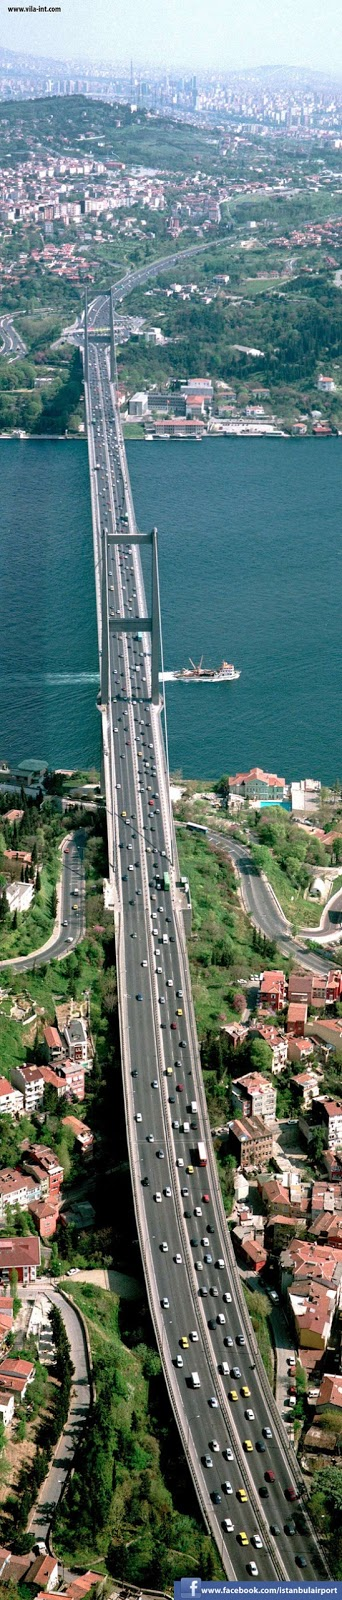 Bosphorus Bridge Istanbul. It is 1,510 m (4,954 ft) long with a deck width of 39 m (128 ft). The distance between the towers (main span) is 1,074 m (3,524 ft) and their height over road level is 105 m (344 ft)